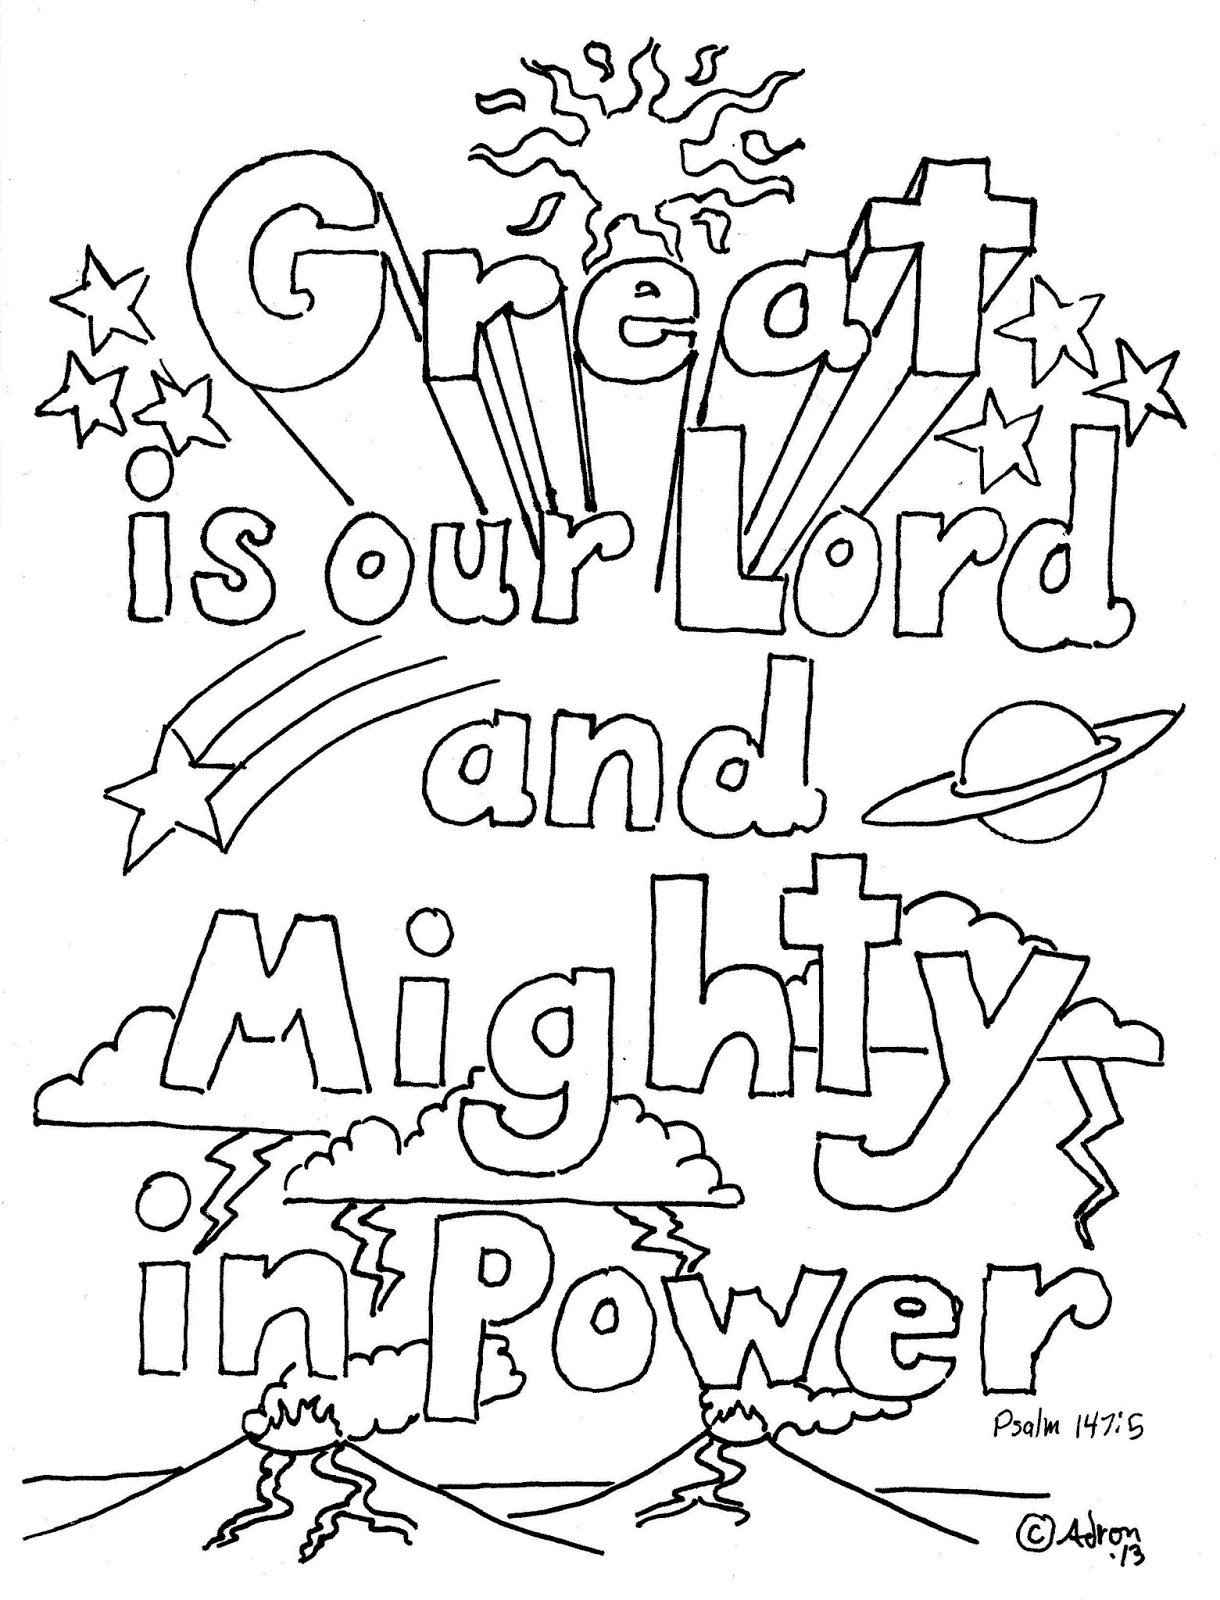 bible verse coloring pages gospel light bible verse coloring with christian coloring pages with verses